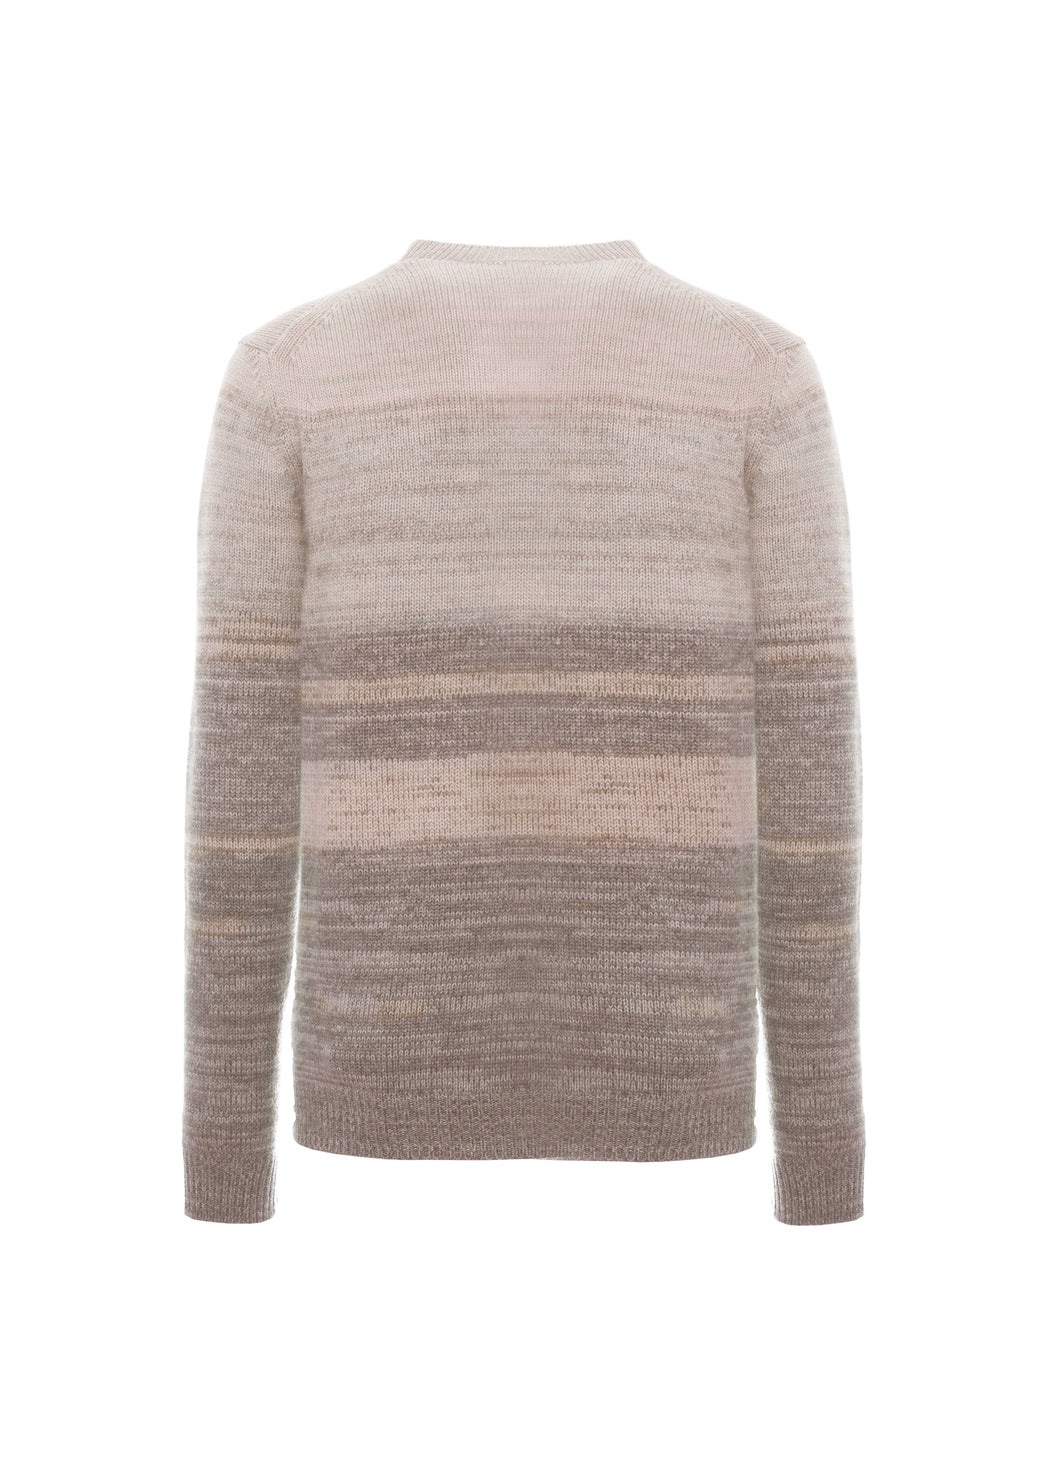 Cashmere mouliné crewneck  - LIMITED EDITION